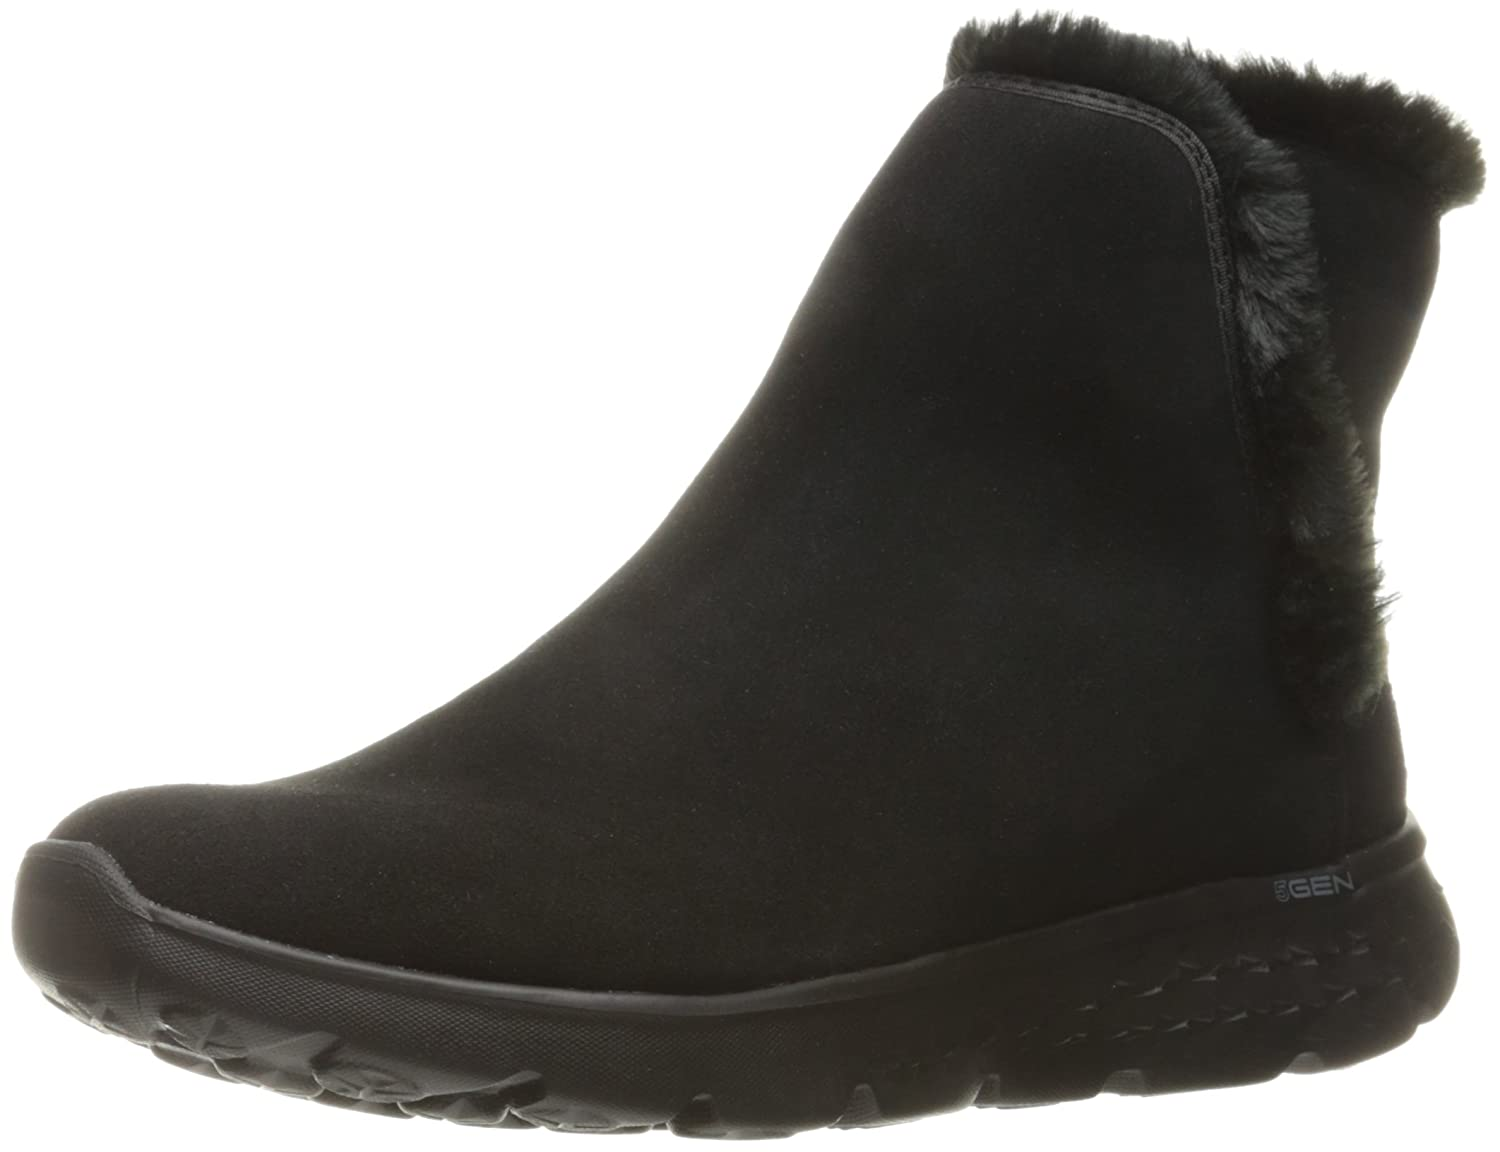 Skechers Damen on-The-Go 400 Blaze Kurzschaft Stiefel  38 EU|Schwarz (Bbk)